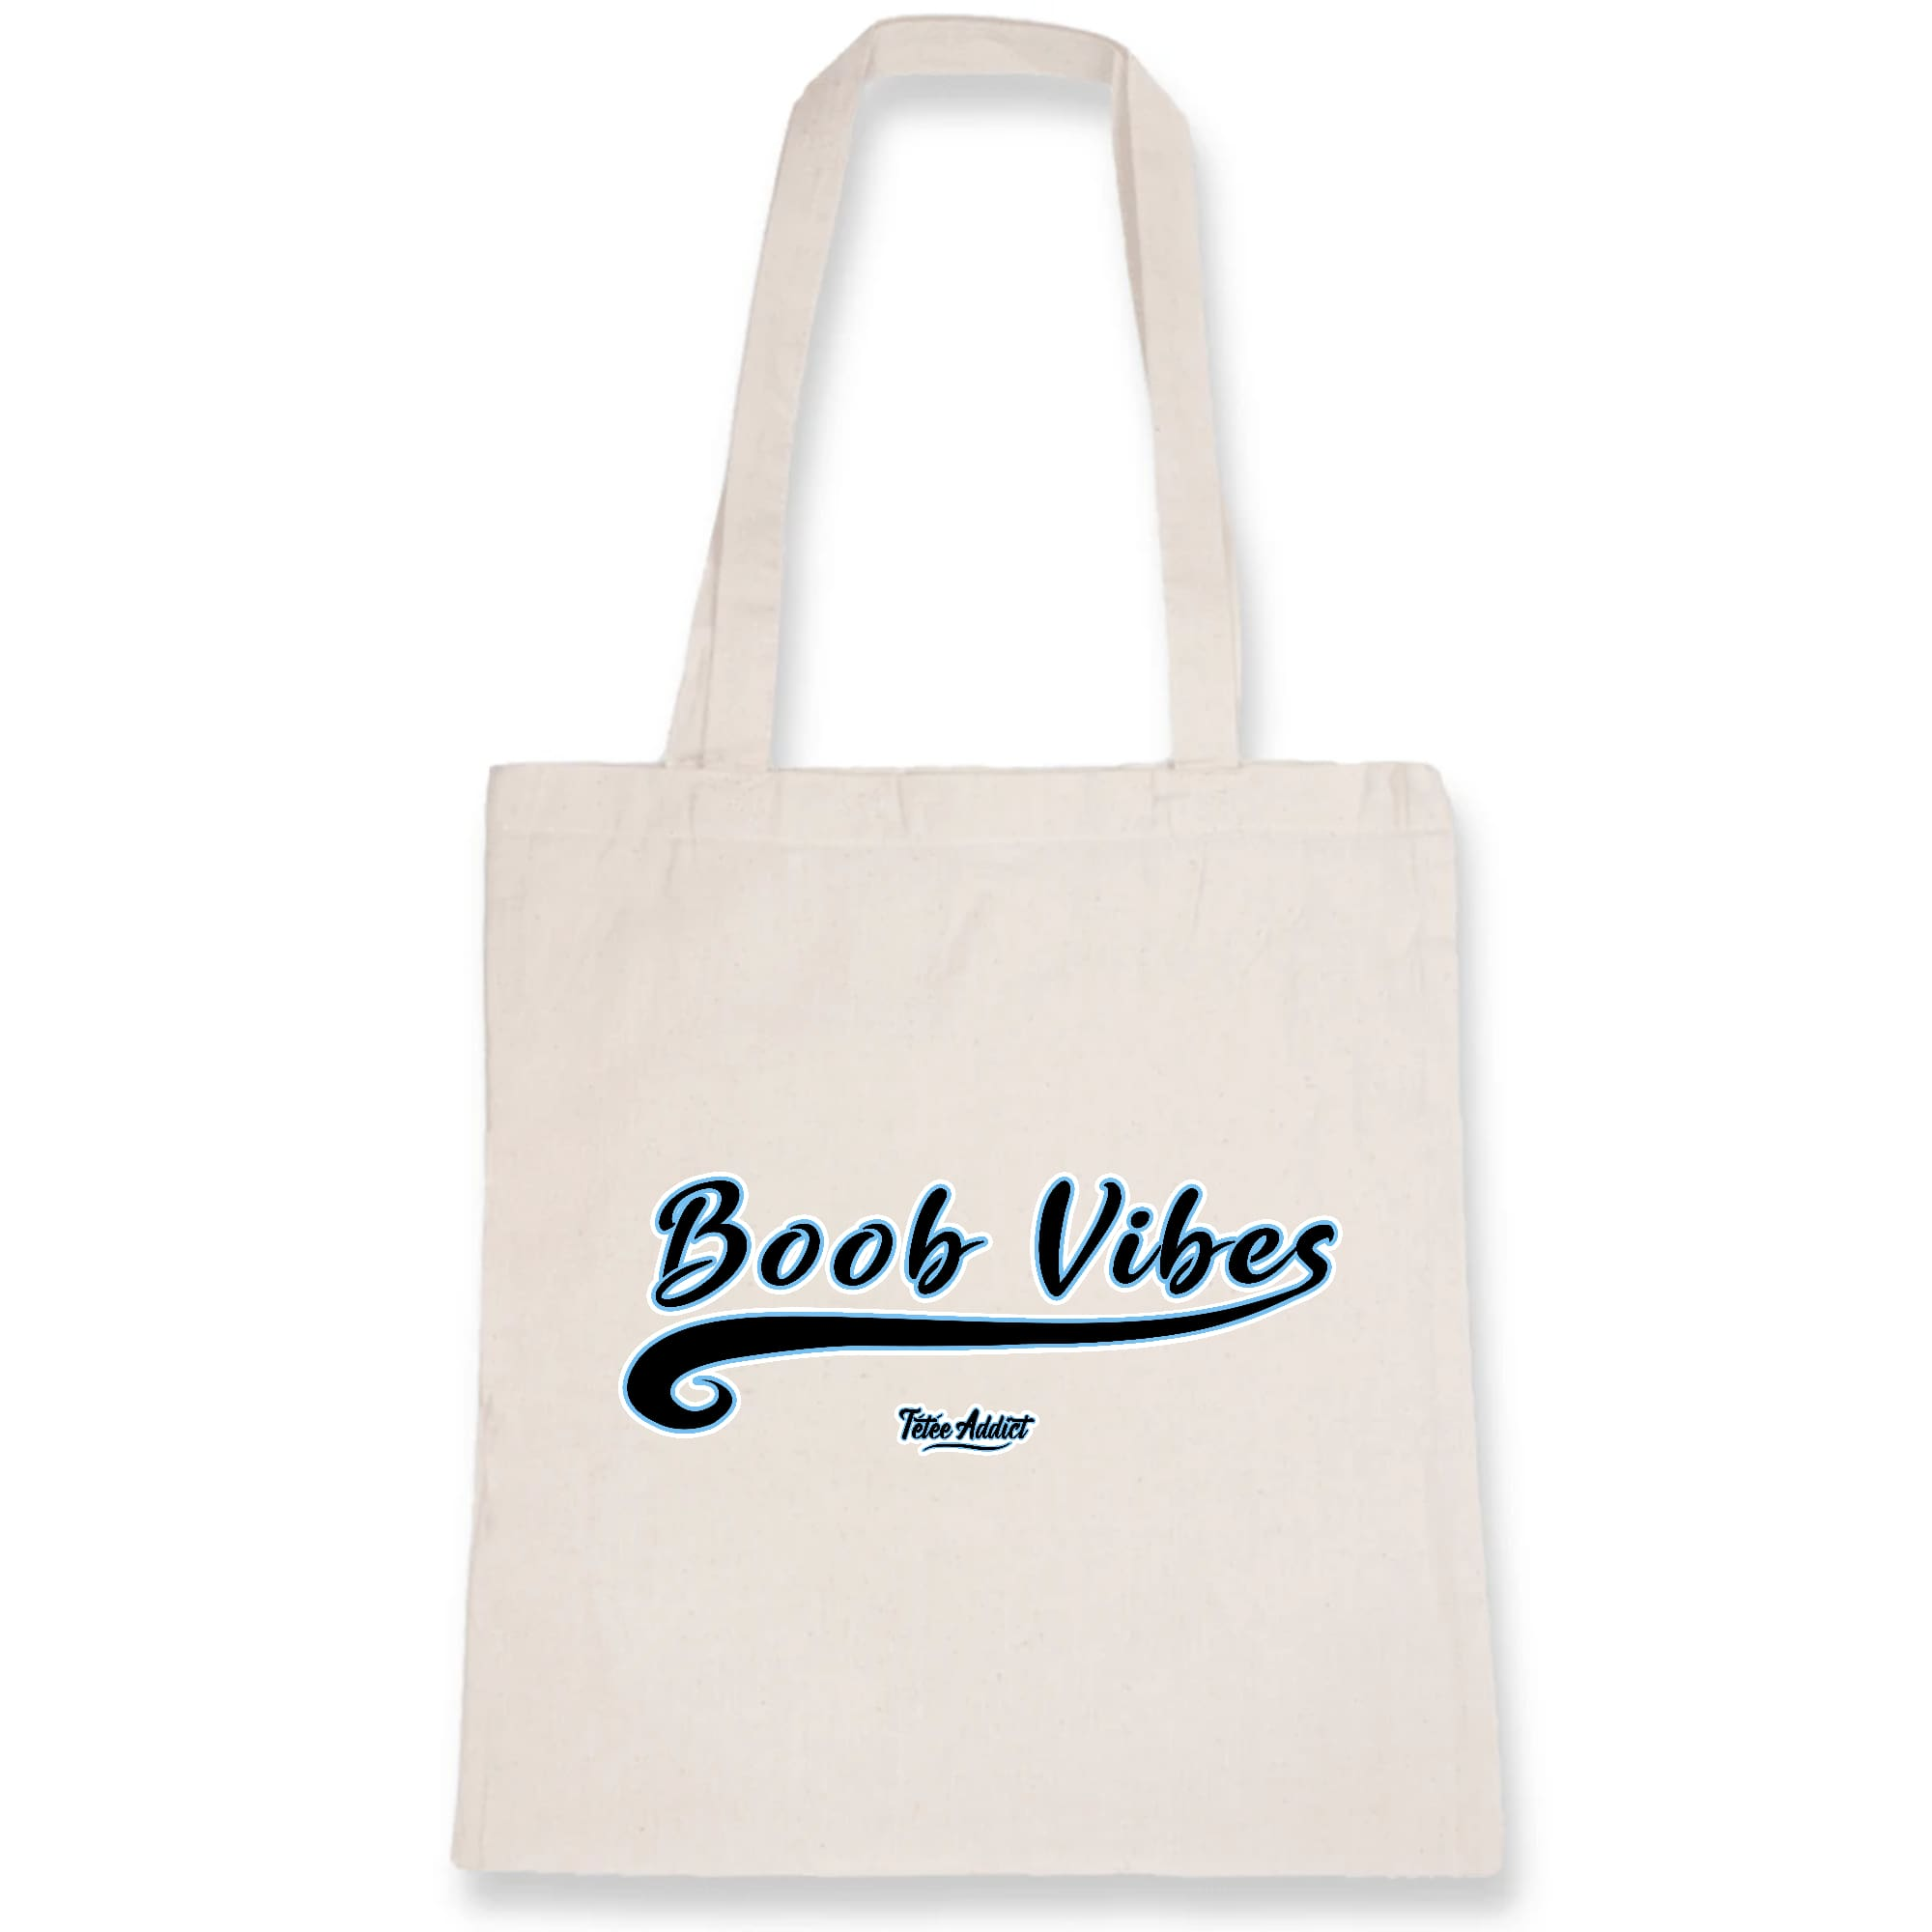 Tote Bag Allaitement - Good Vibes (Boob Vibes)